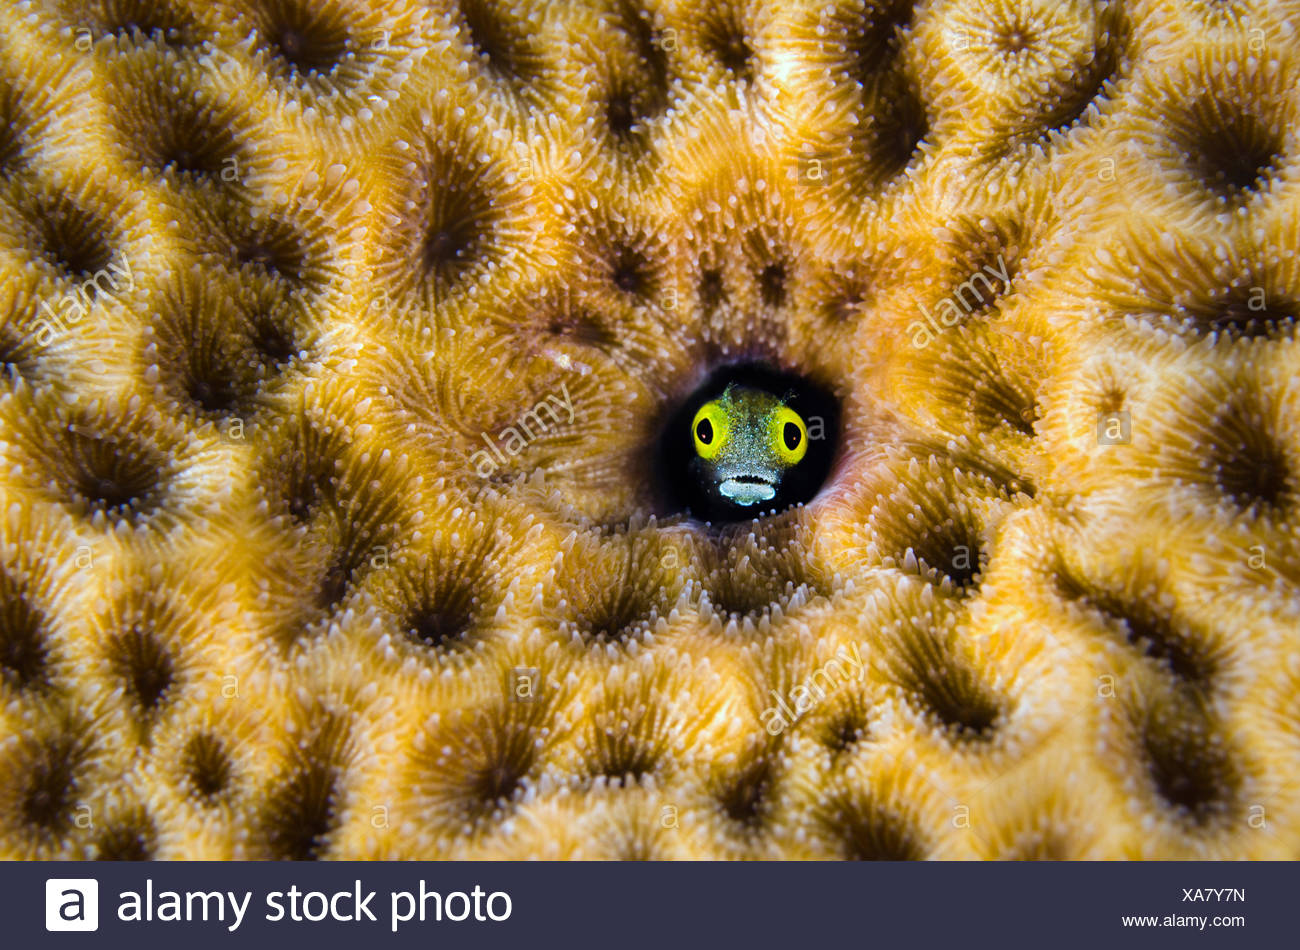 Secretary blenny (Acanthemblemaria maria) peers out of its hole in a massive Starlet coral (Siderastrea siderea) East End, Grand Cayman, Cayman Islands, British West Indies, Caribbean Sea. - Stock Image